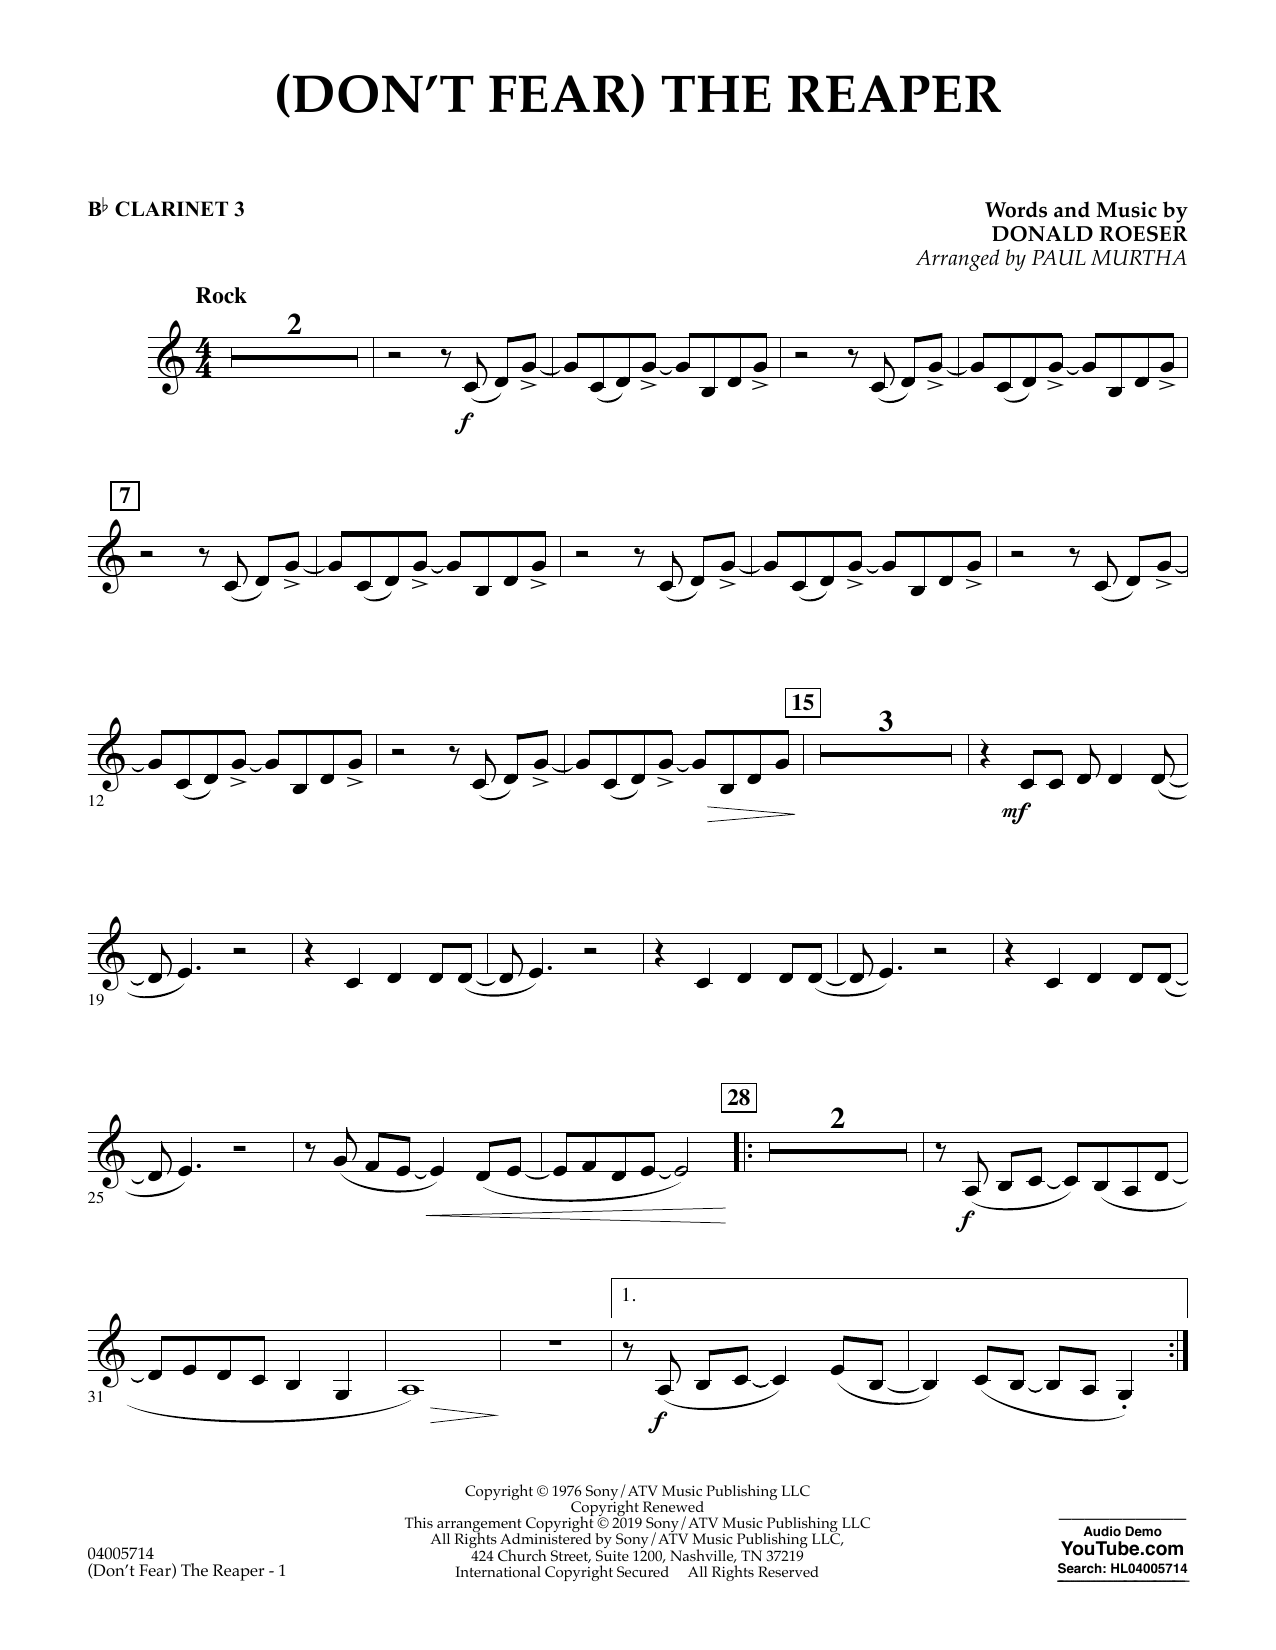 Blue Oyster Cult '(Don't Fear) The Reaper (arr  Paul Murtha) - Bb Clarinet  3' Sheet Music Notes, Chords | Download Printable Concert Band - SKU: